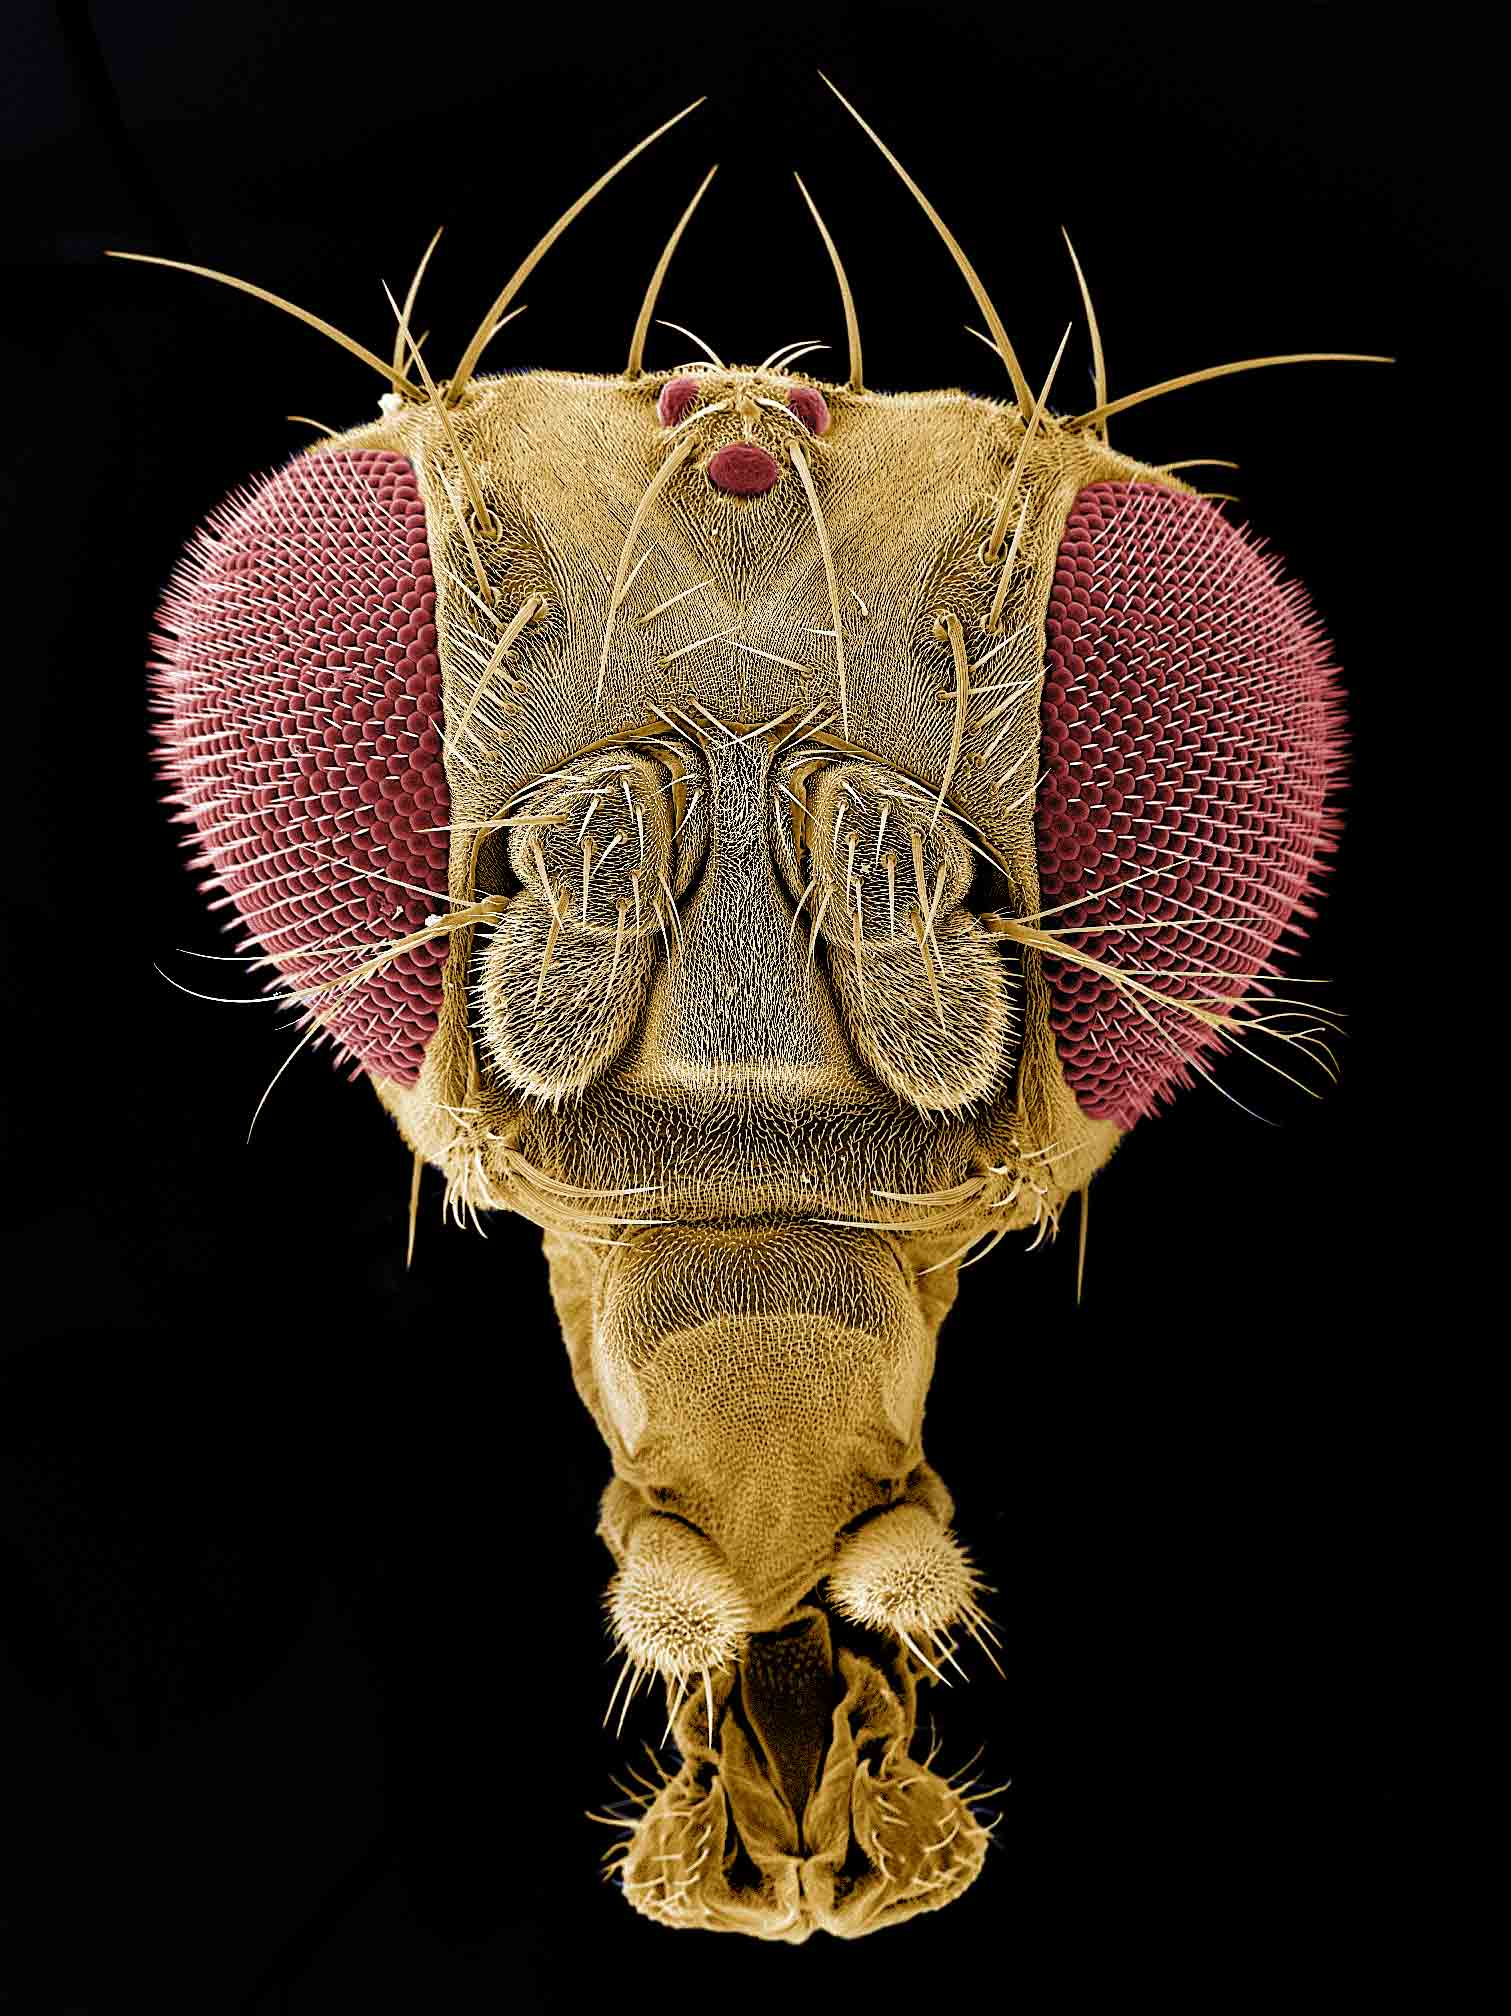 Fruit Flies Have Concussions Too